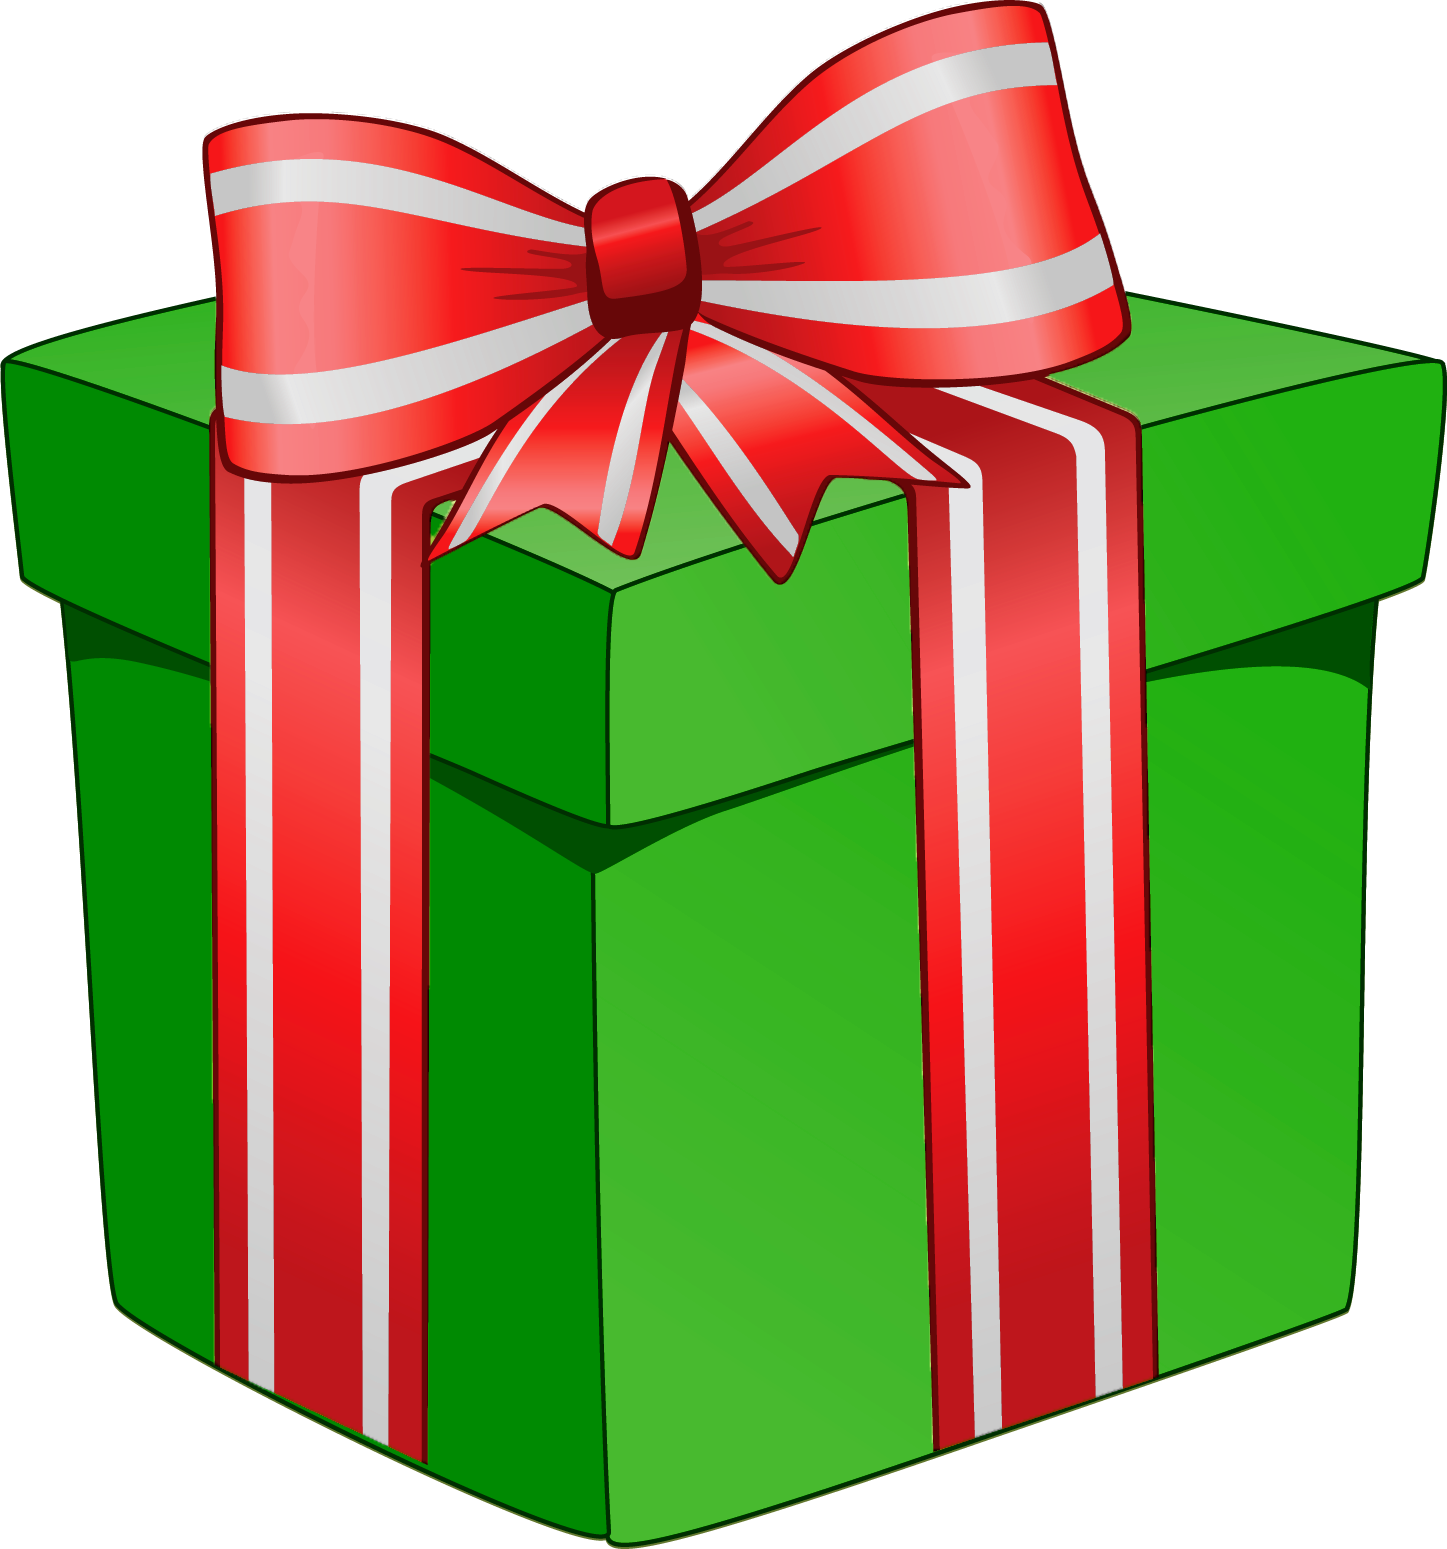 Boxes clipart gift. Box